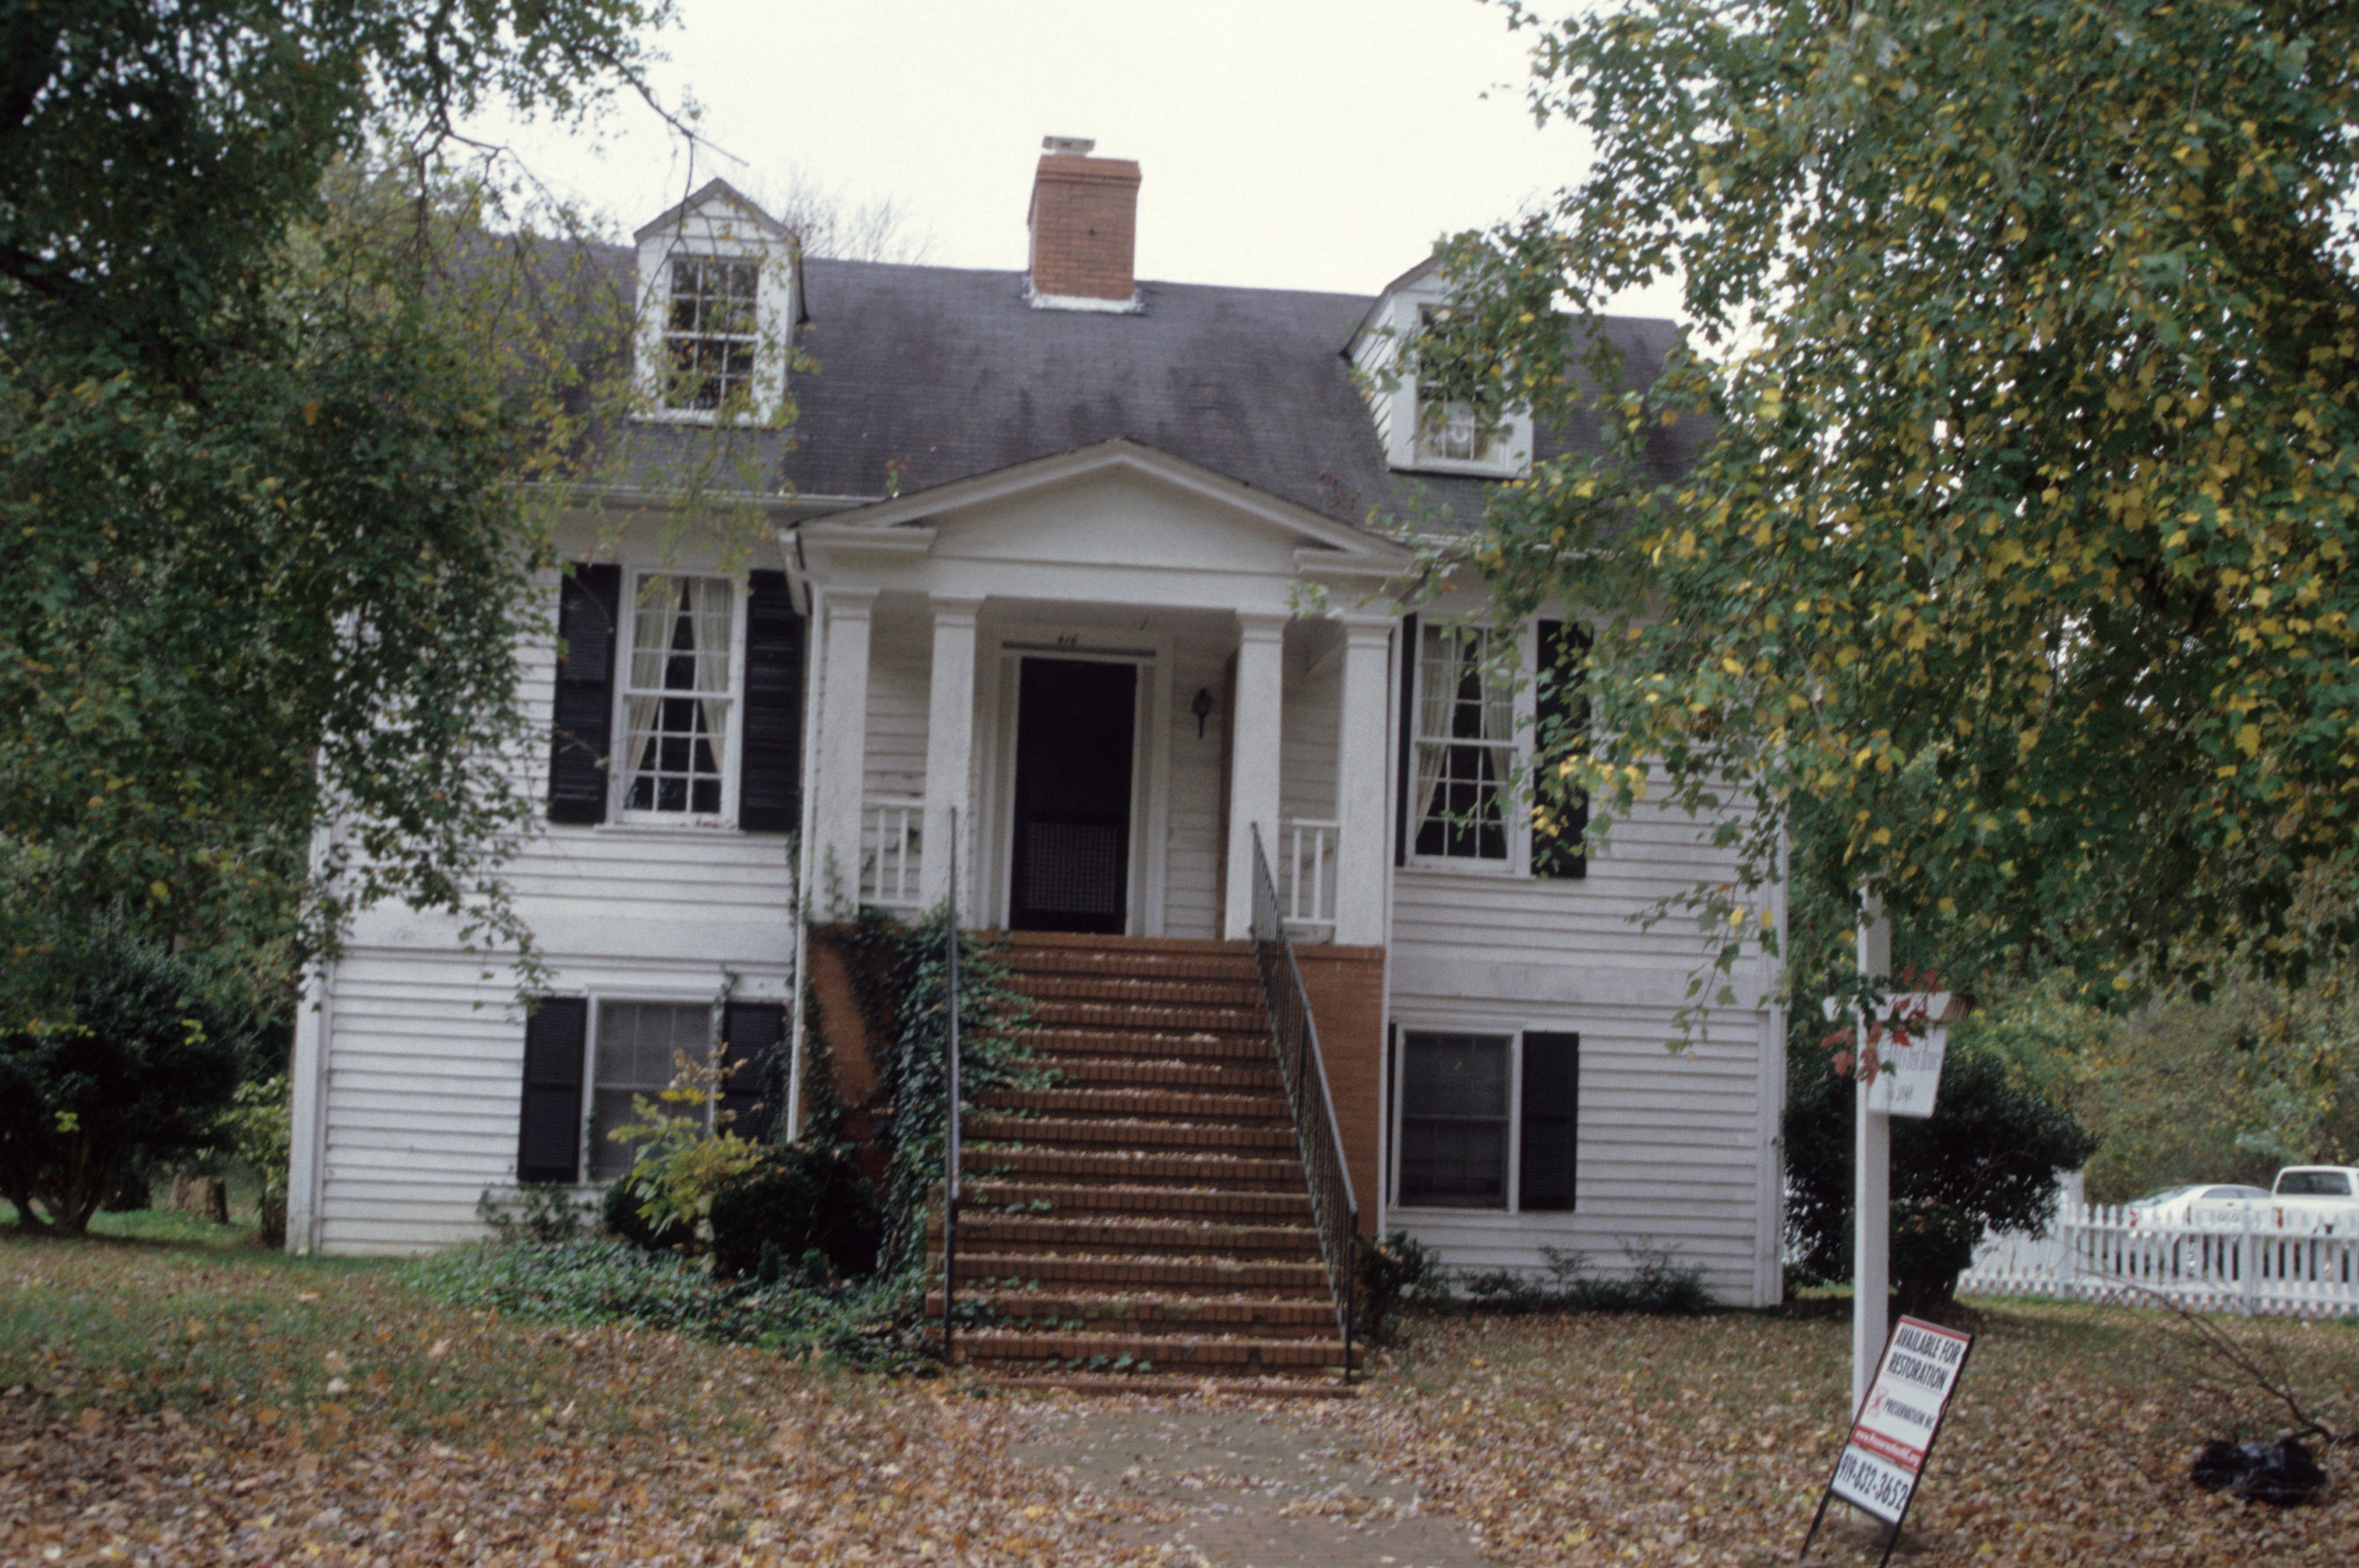 Front view, Jacob W. Holt House, Warrenton, Warren County, North Carolina